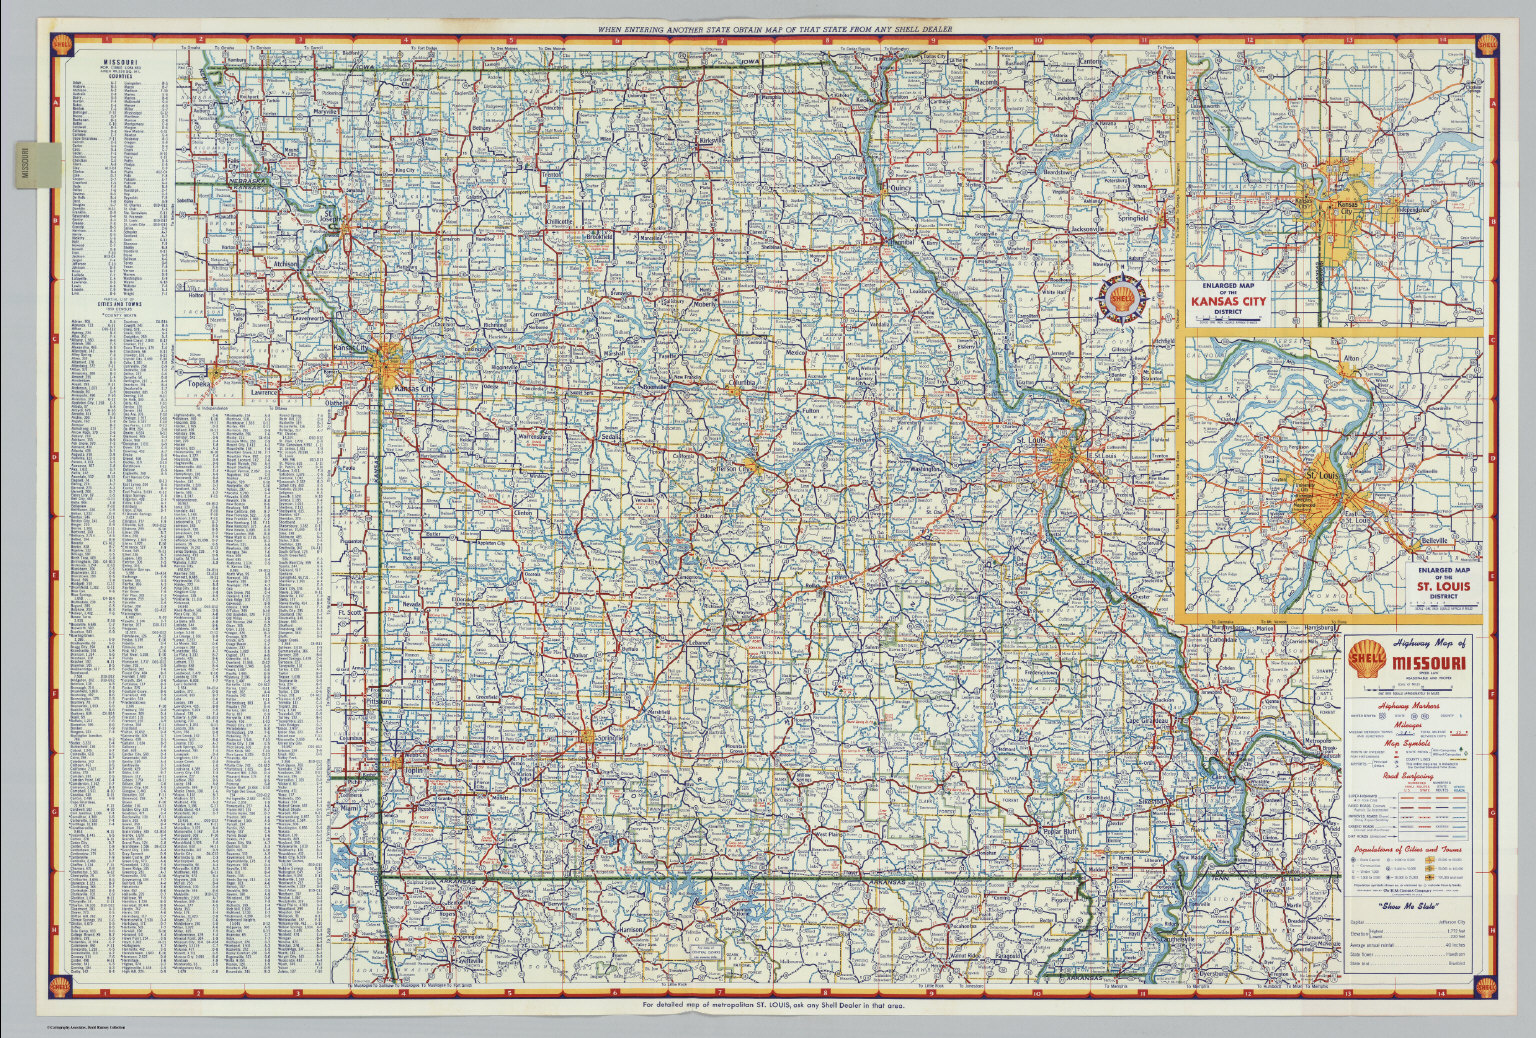 Shell Highway Map of Missouri David Rumsey Historical Map Collection